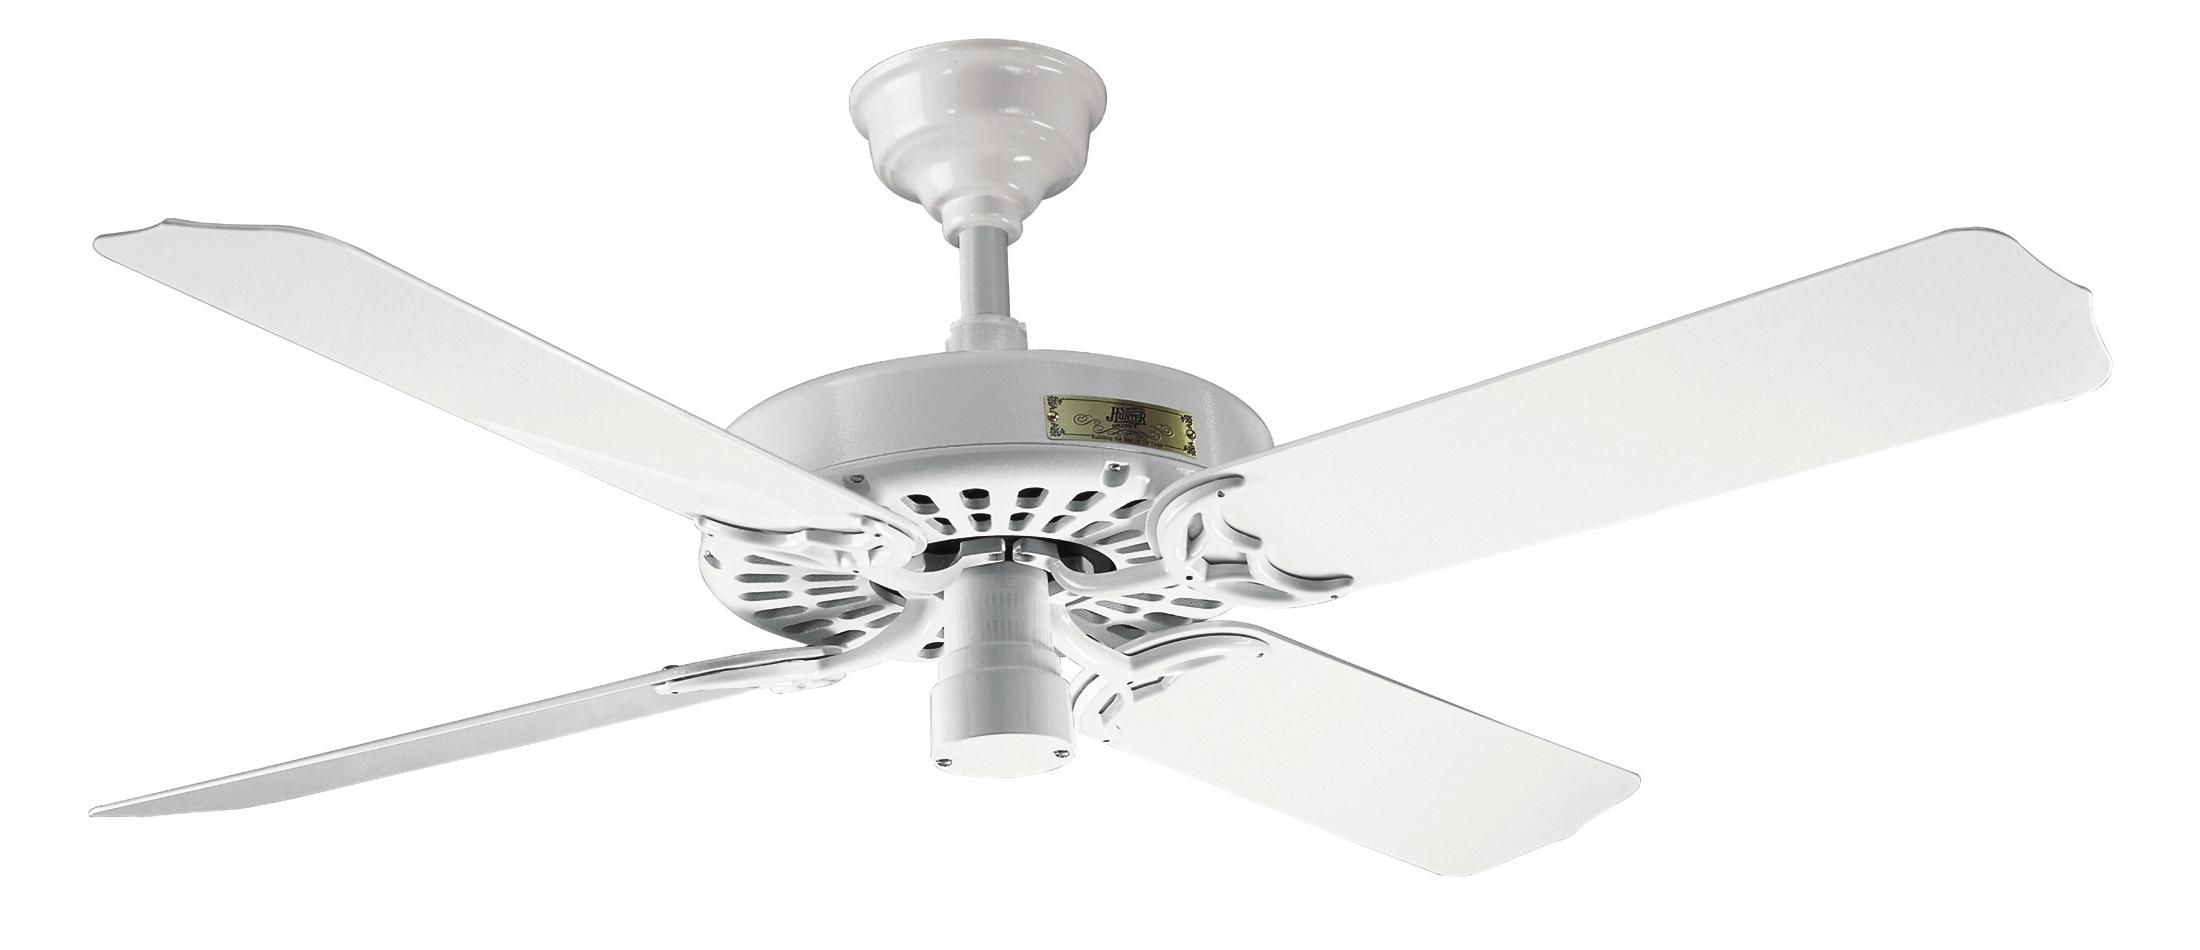 1000 images about ceiling fans on pinterest hunter original ceiling fans and hunters ceiling fan